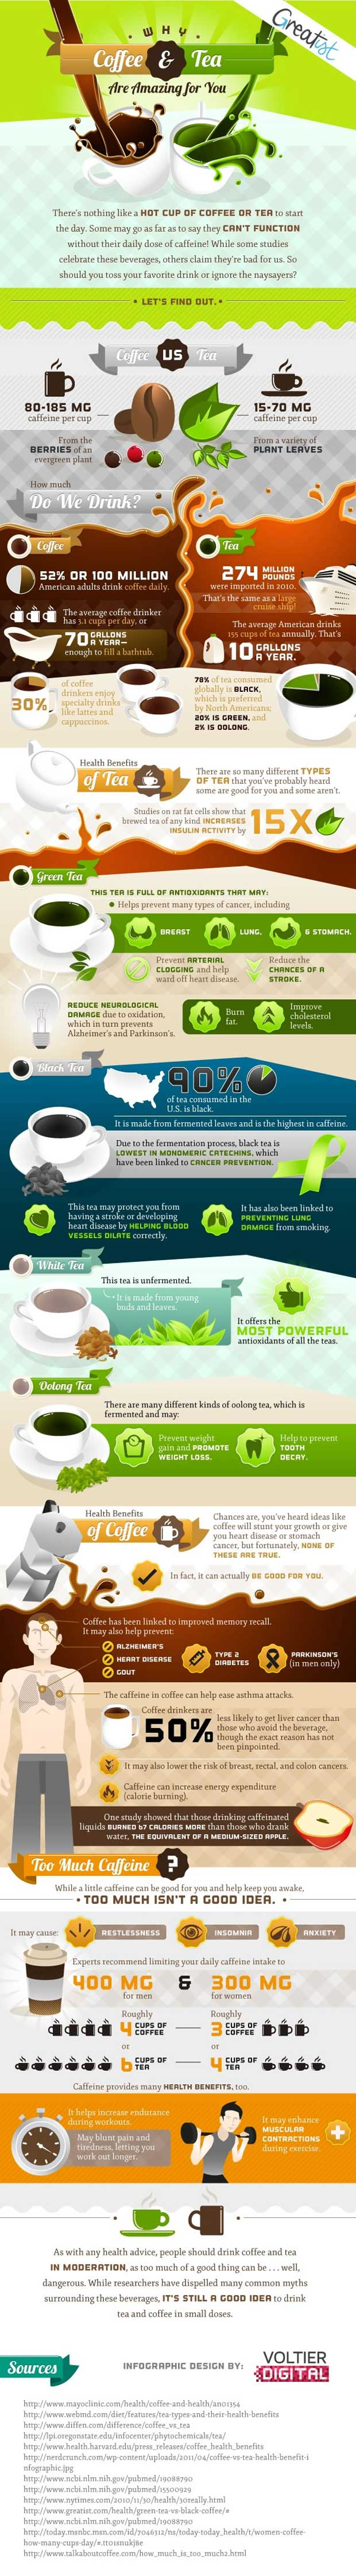 Heath benefits of coffee and tea infographic